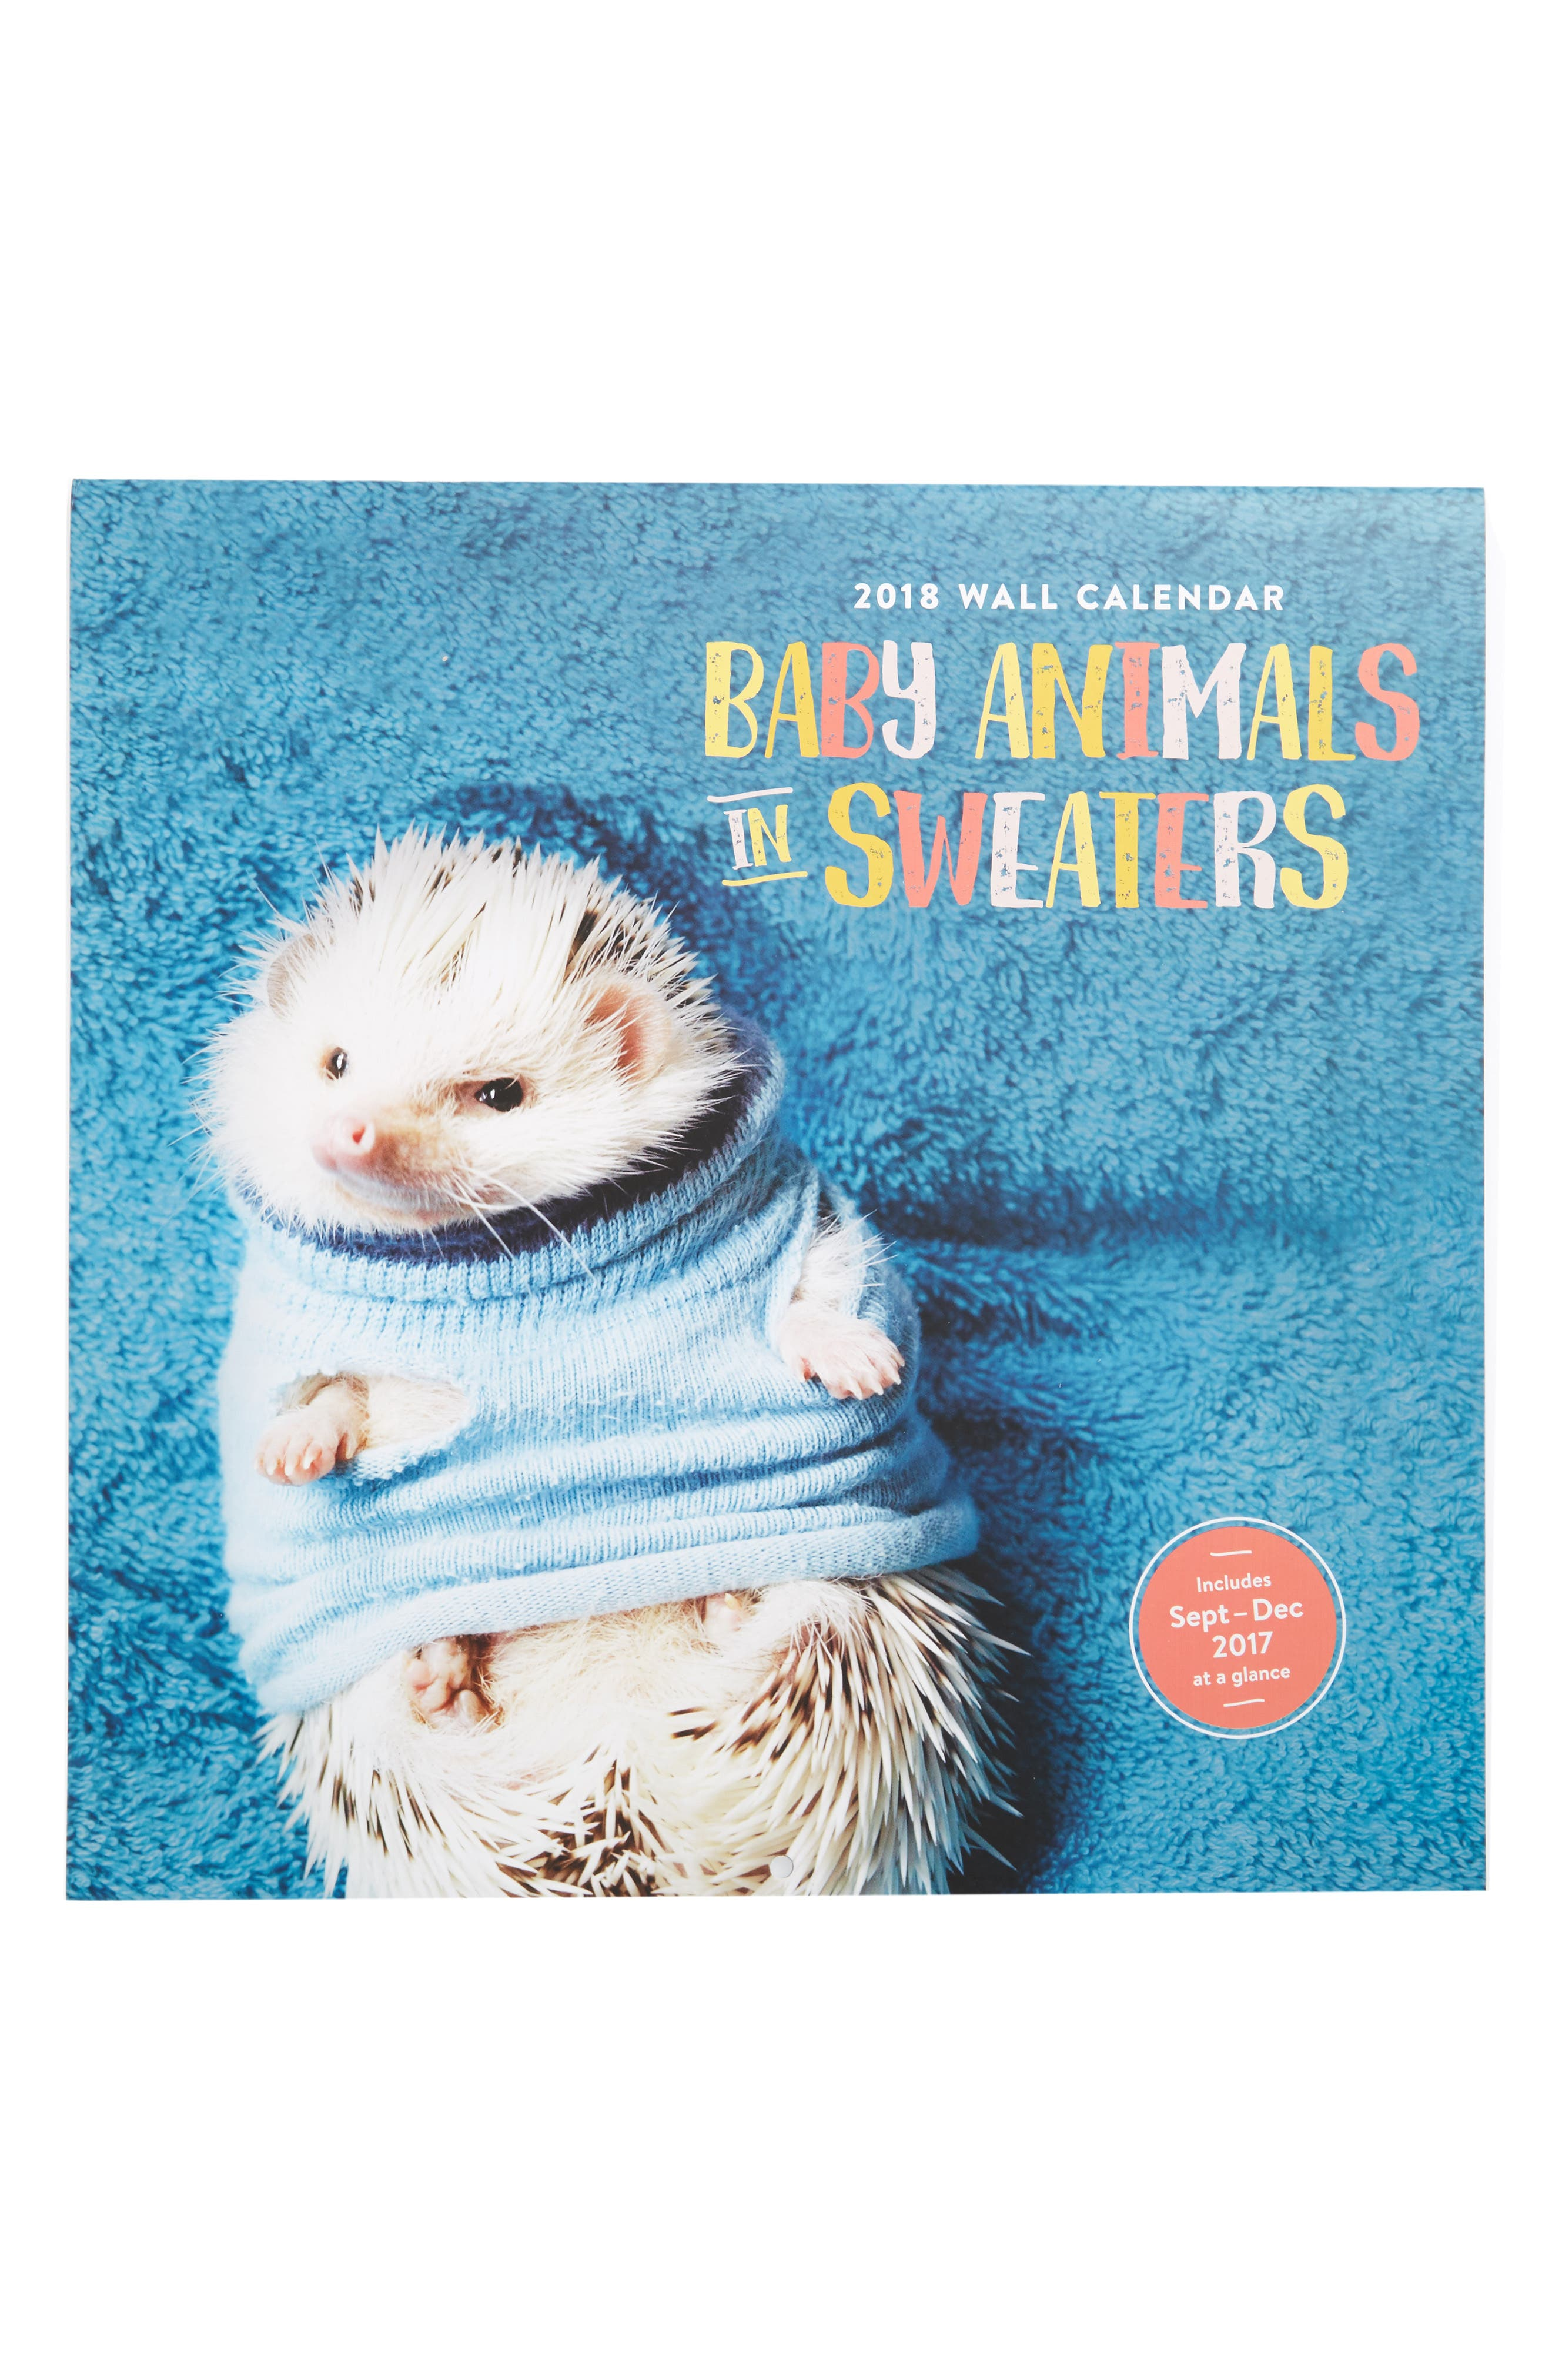 Baby Animals in Sweaters 2018 Wall Calendar,                             Main thumbnail 1, color,                             400